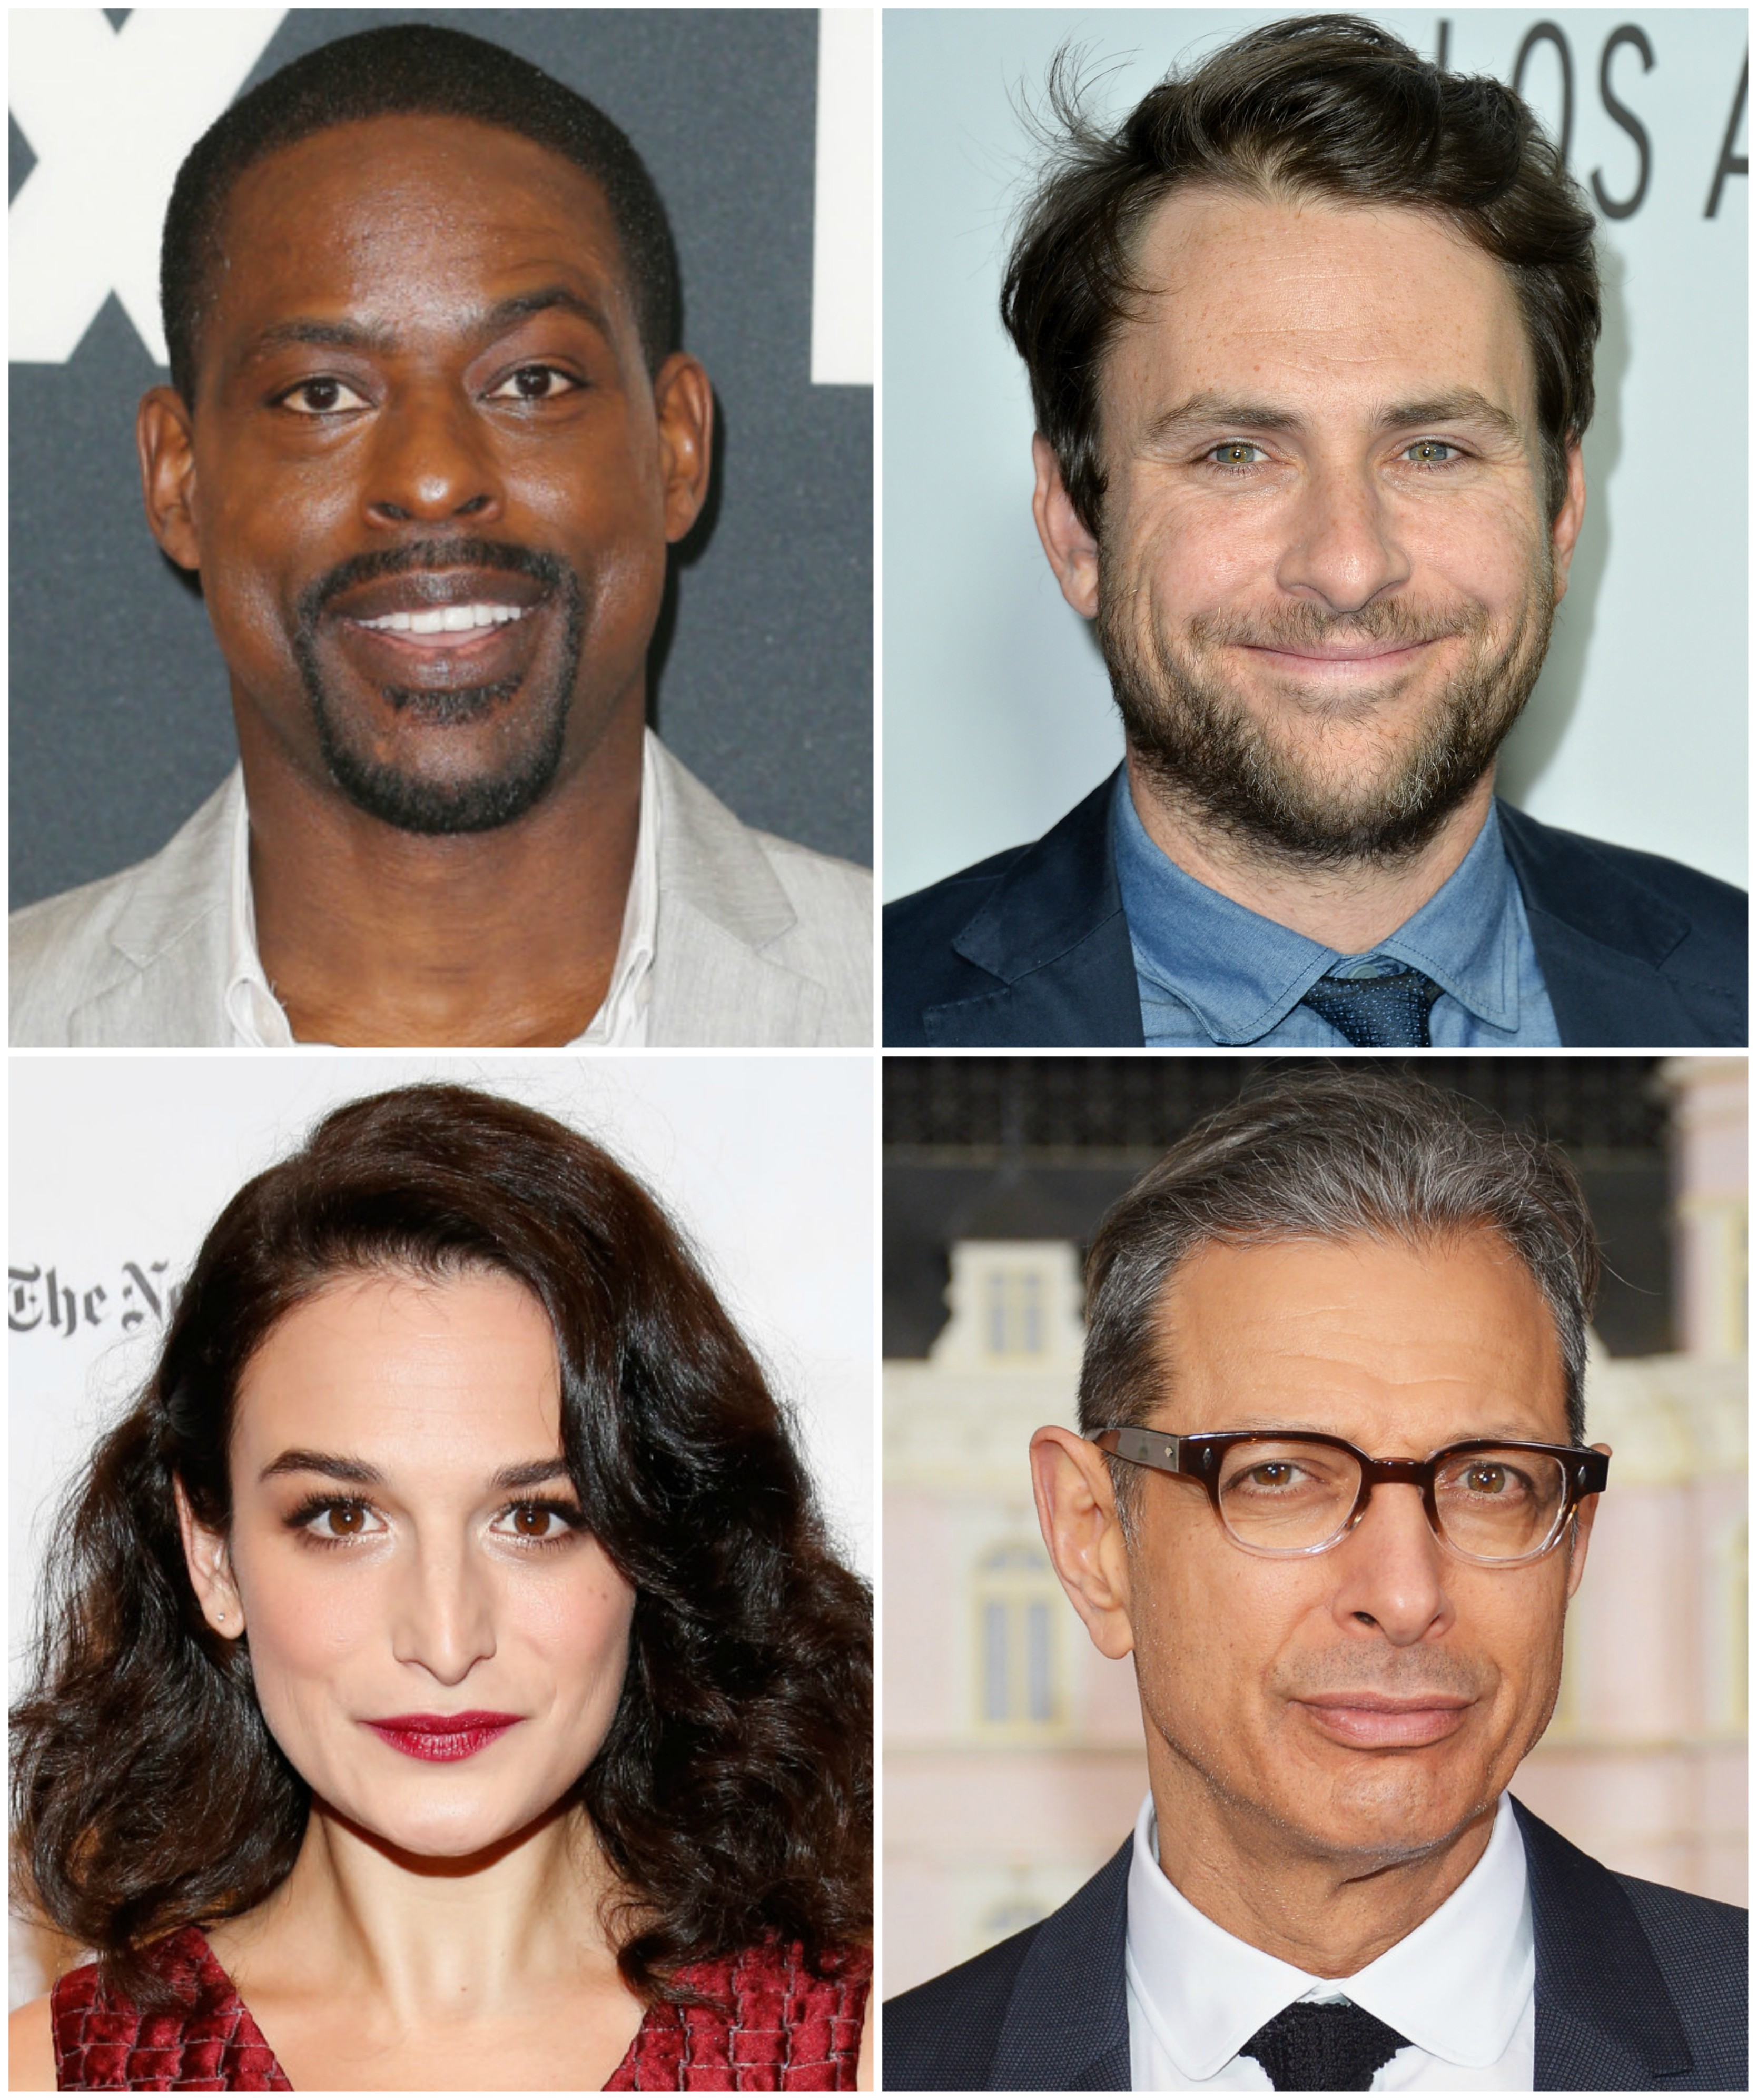 An Extensive Ensemble Cast Has Joined Academy Award Winner Jodie Foster In Drew Pearces Much Anticipated Directorial Debut Hotel Artemis